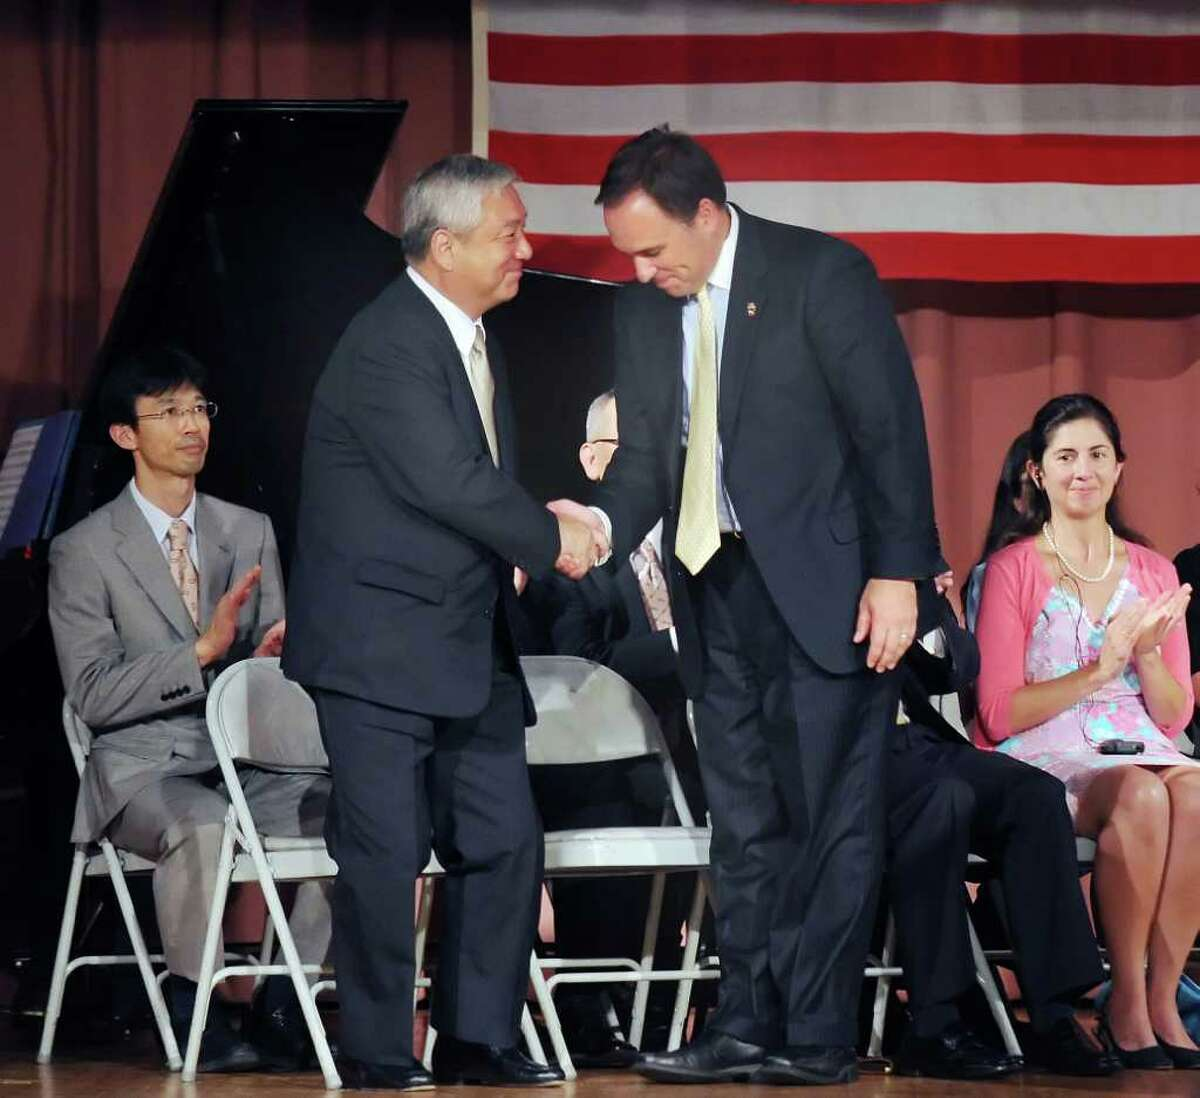 Japanese Ambassador to the United States Shinichi Nishimiya greets Greenwich First Selectman Peter Tesei during the 35th anniversary celebration of the foudning of the Japanese School of New York which is located on Lake Avenue, Greenwich, Thursday afternoon, Sept. 2, 2010.